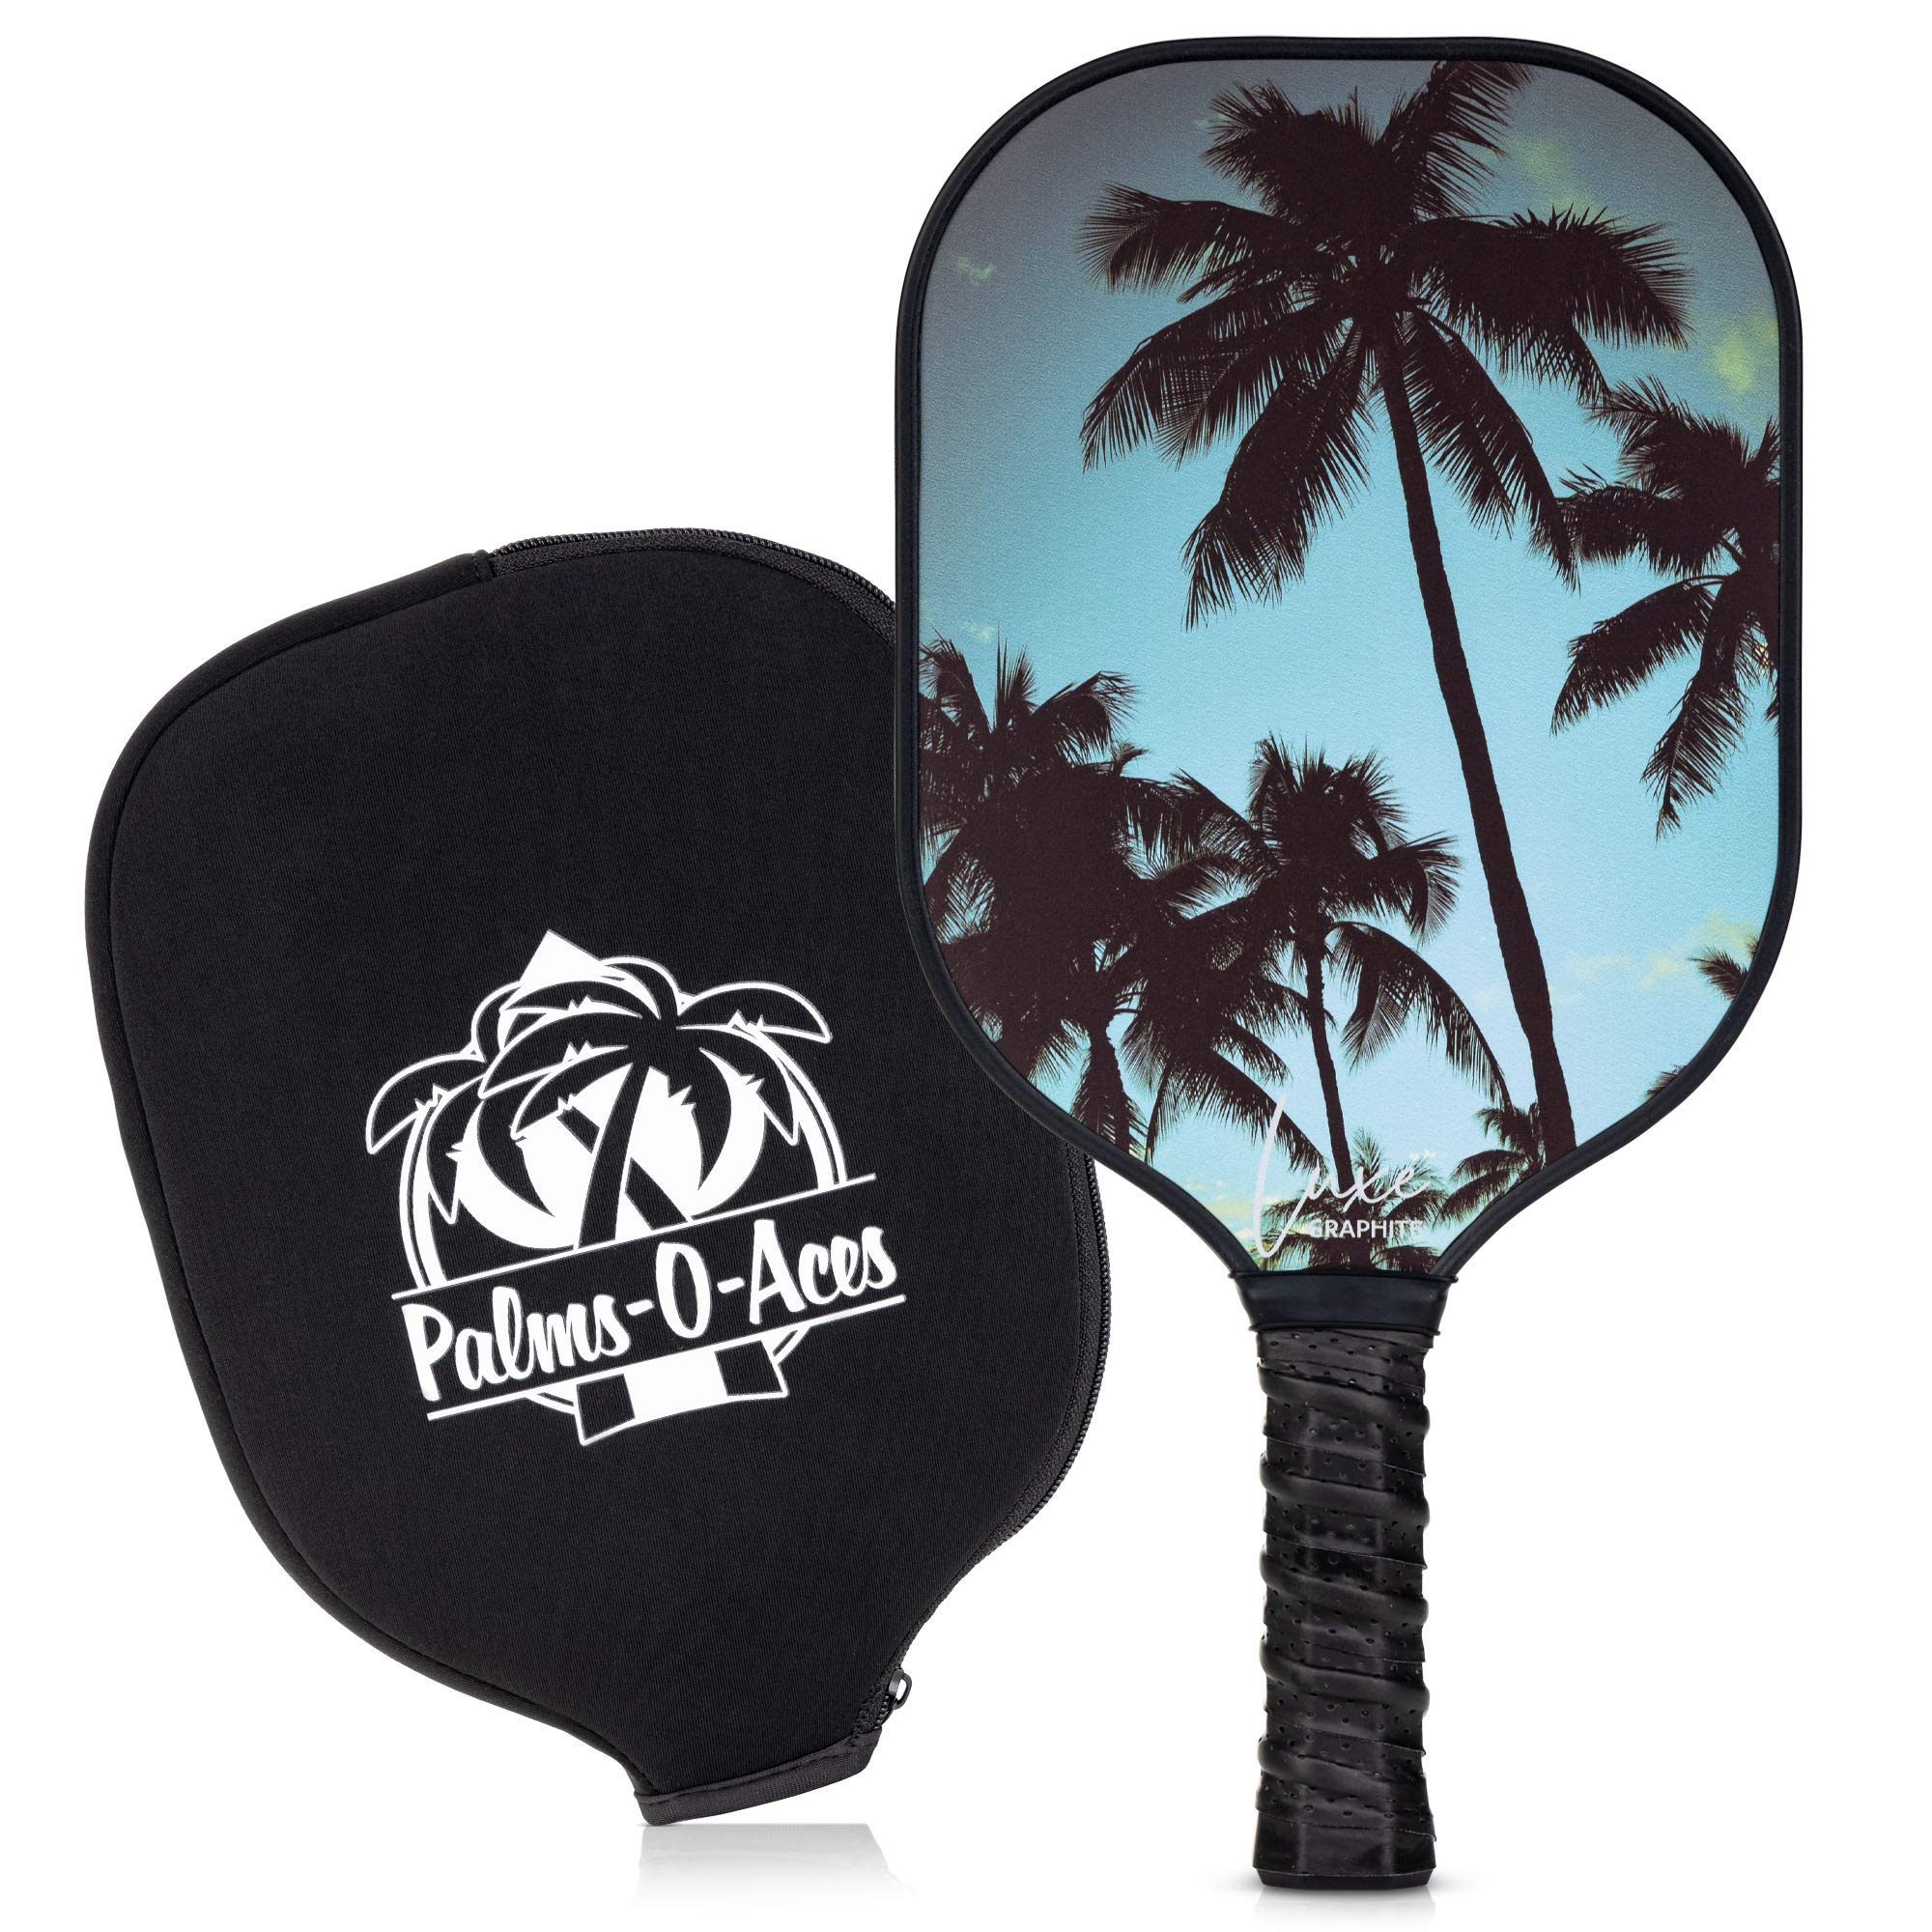 Palms-O-Aces Graphite Pickleball Paddle with Cover - T -WFFL